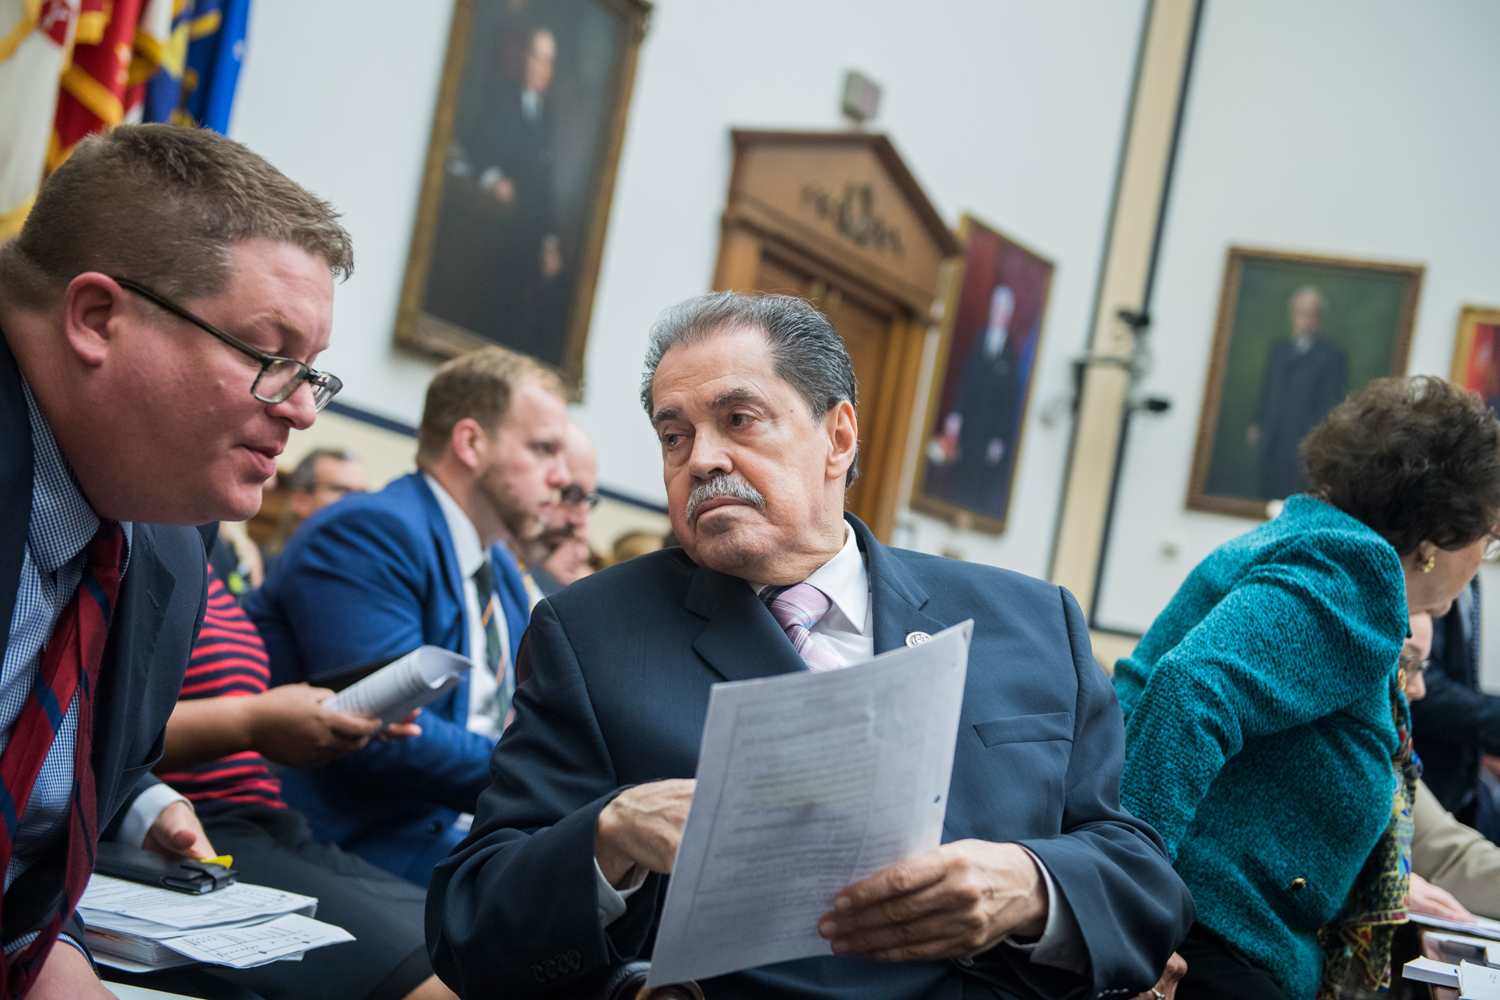 Rep. Jose Serrano, D-N.Y., talks with an aide during a House Appropriations Committee mark up of the FY 2019 Commerce, Justice and Science Appropriations bill in Rayburn Building on May 17, 2018.